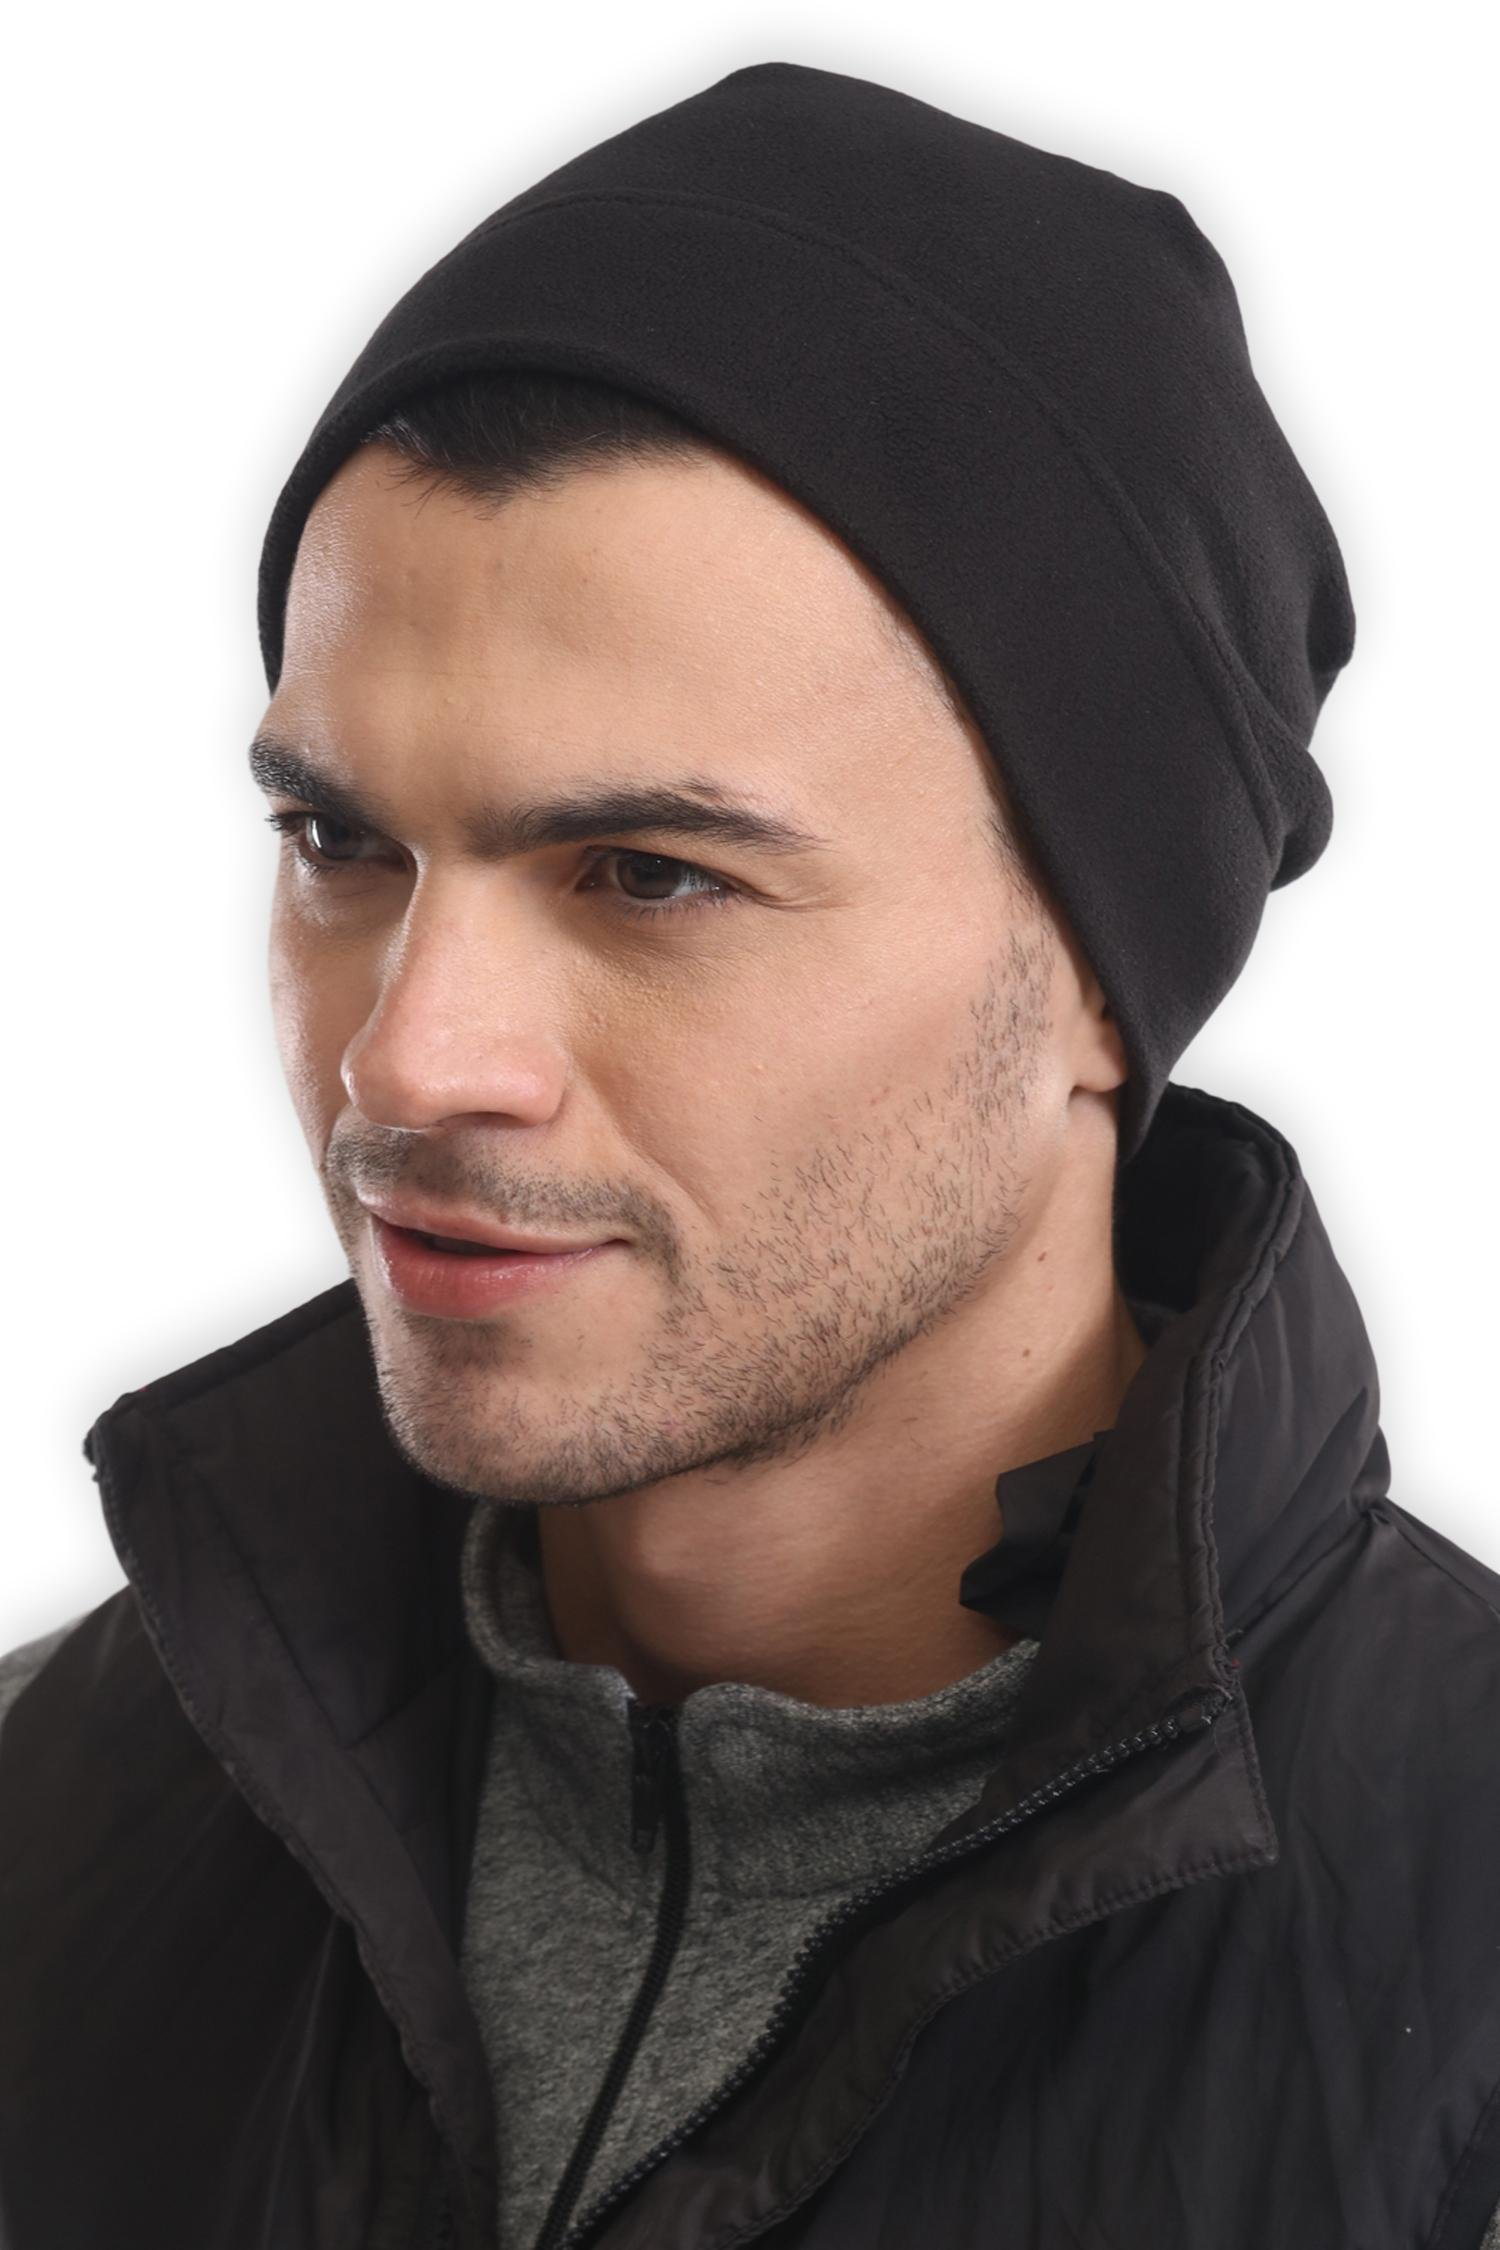 Fleece Winter Beanie Hat Tactical Military Style Cold Weather Midweight Watch Cap for Men & Women Ultimate Thermal Retention and Performance Stretch. Perfect for Sports & Daily Wear